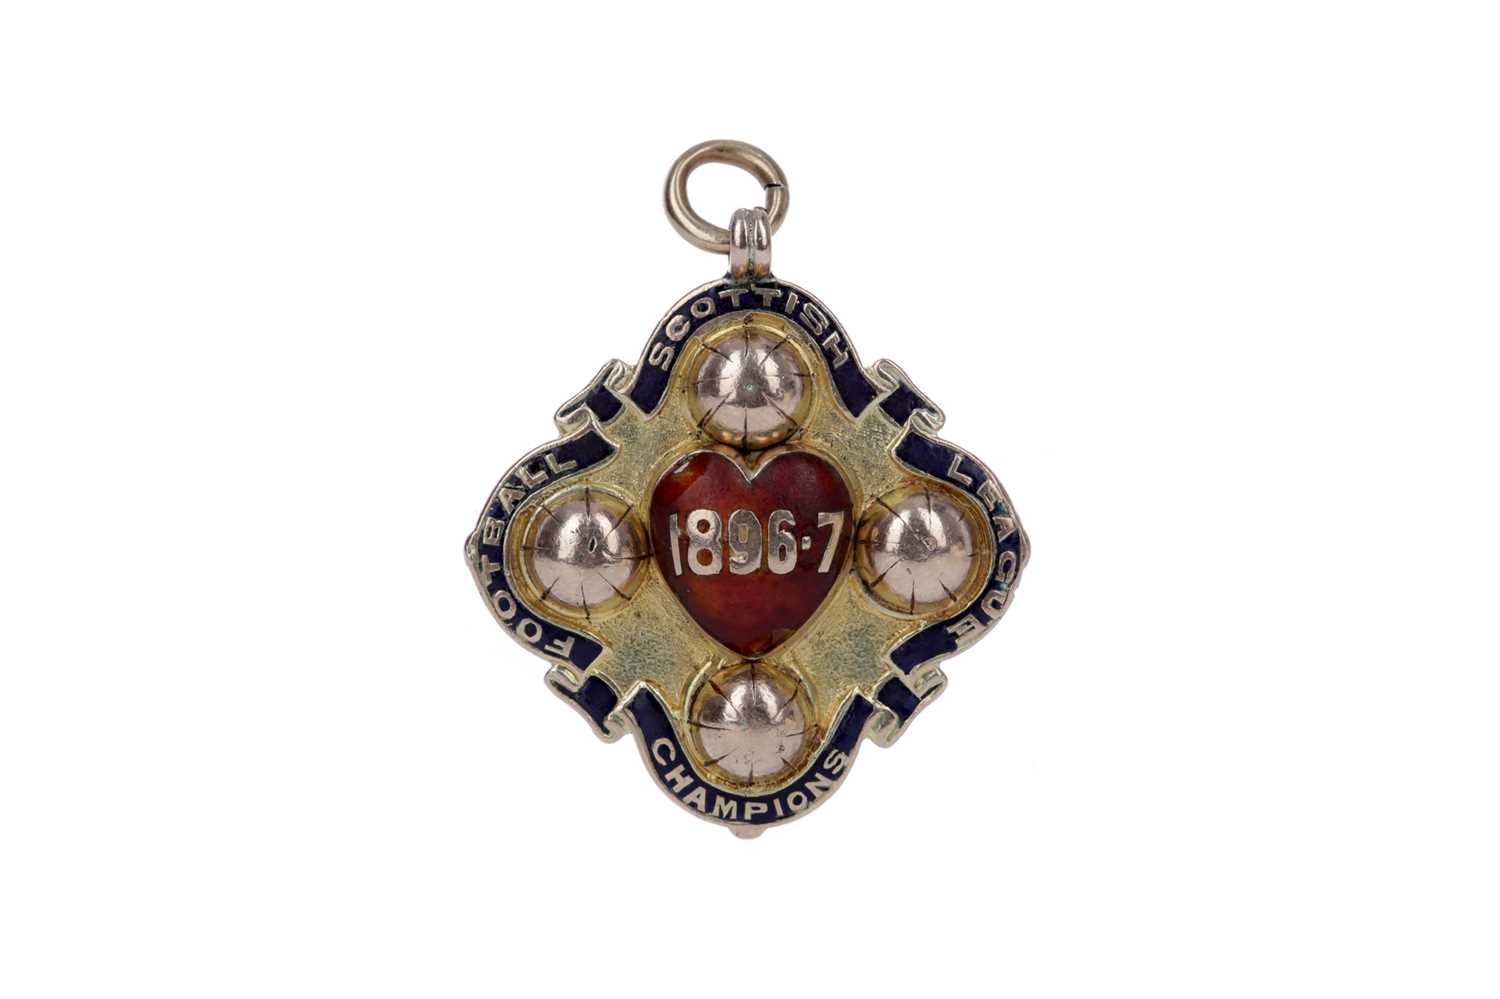 Lot 1705 - TOM ROBERTSON OF HEART OF MIDLOTHIAN F.C. - HIS S.F.L. CHAMPIONSHIP GOLD MEDAL 1896/97